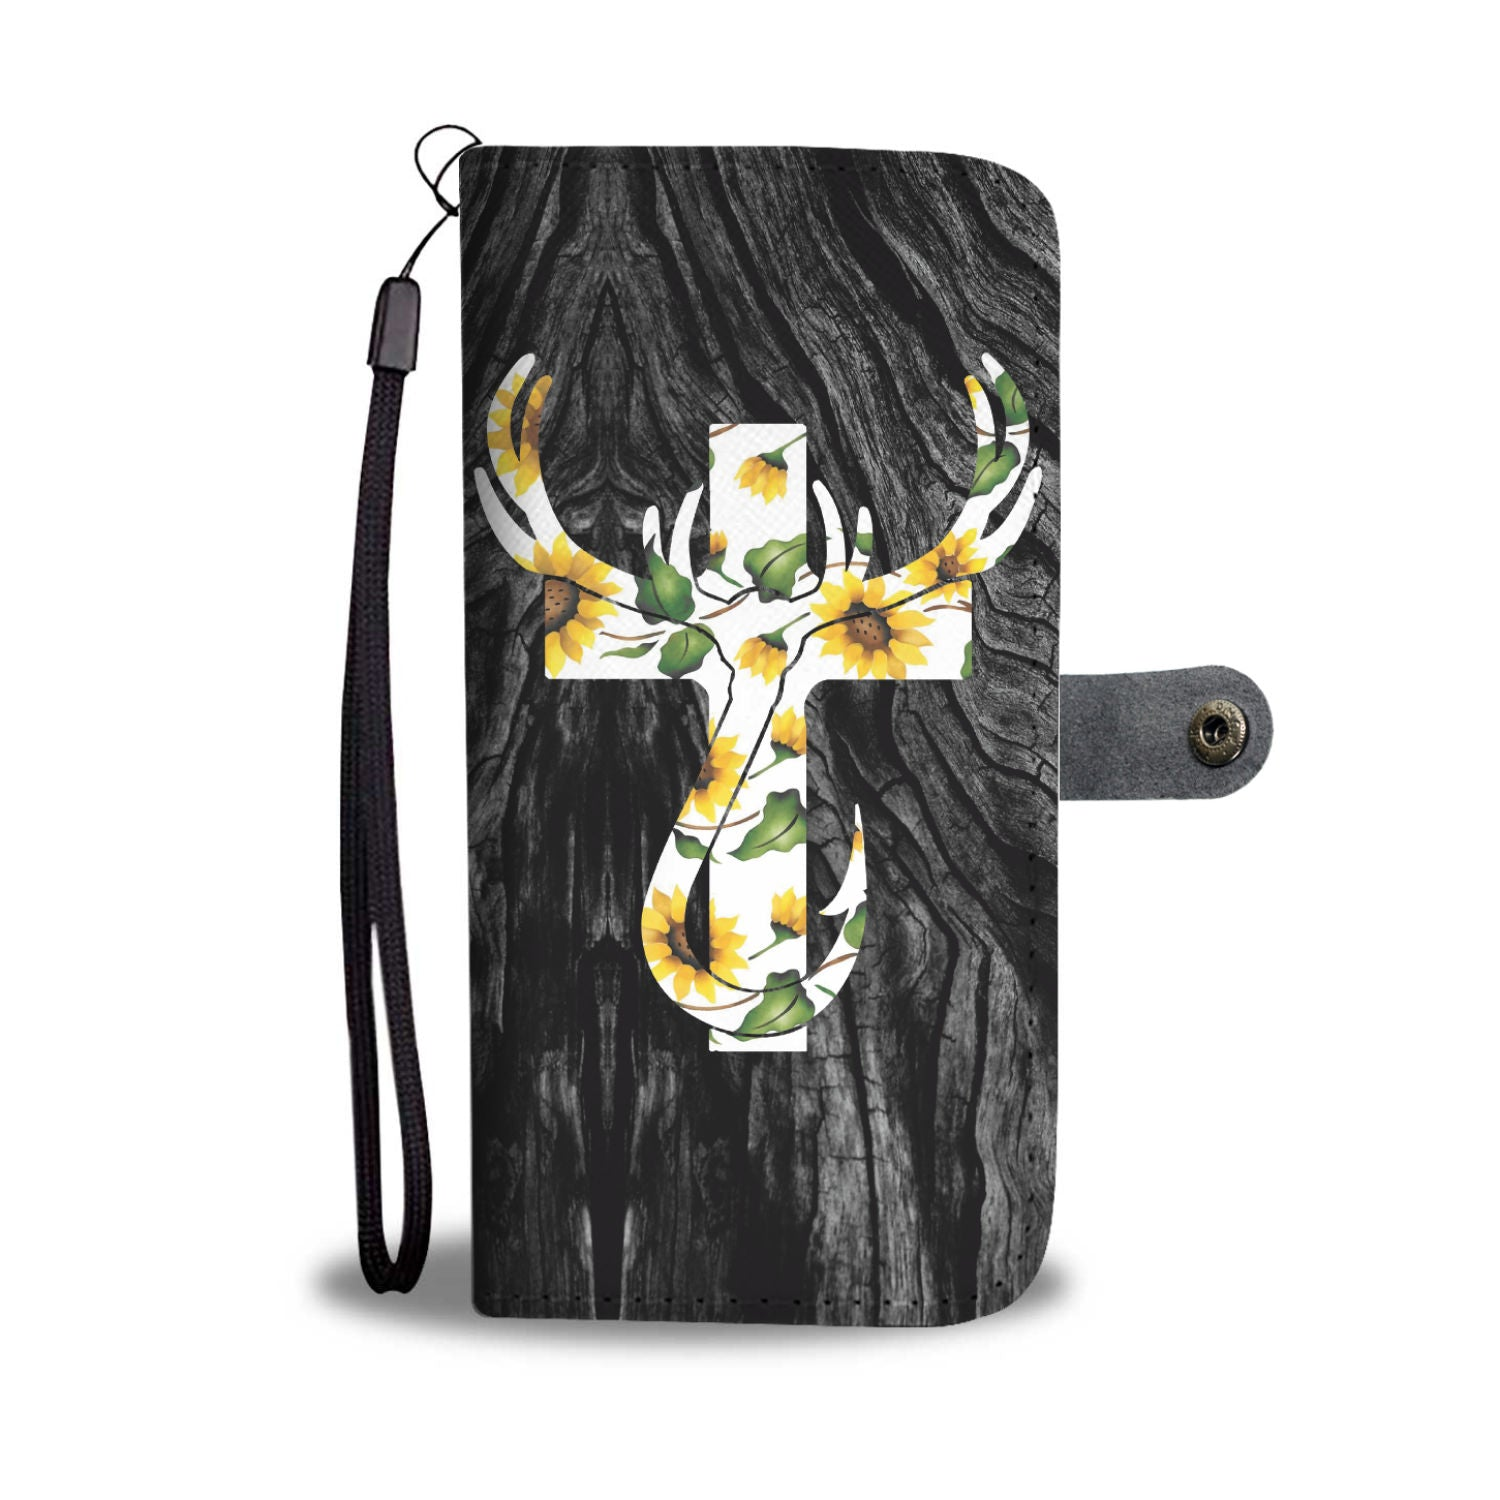 VIRA Awesome Leather-like Wallet Case For Jesus Lovers